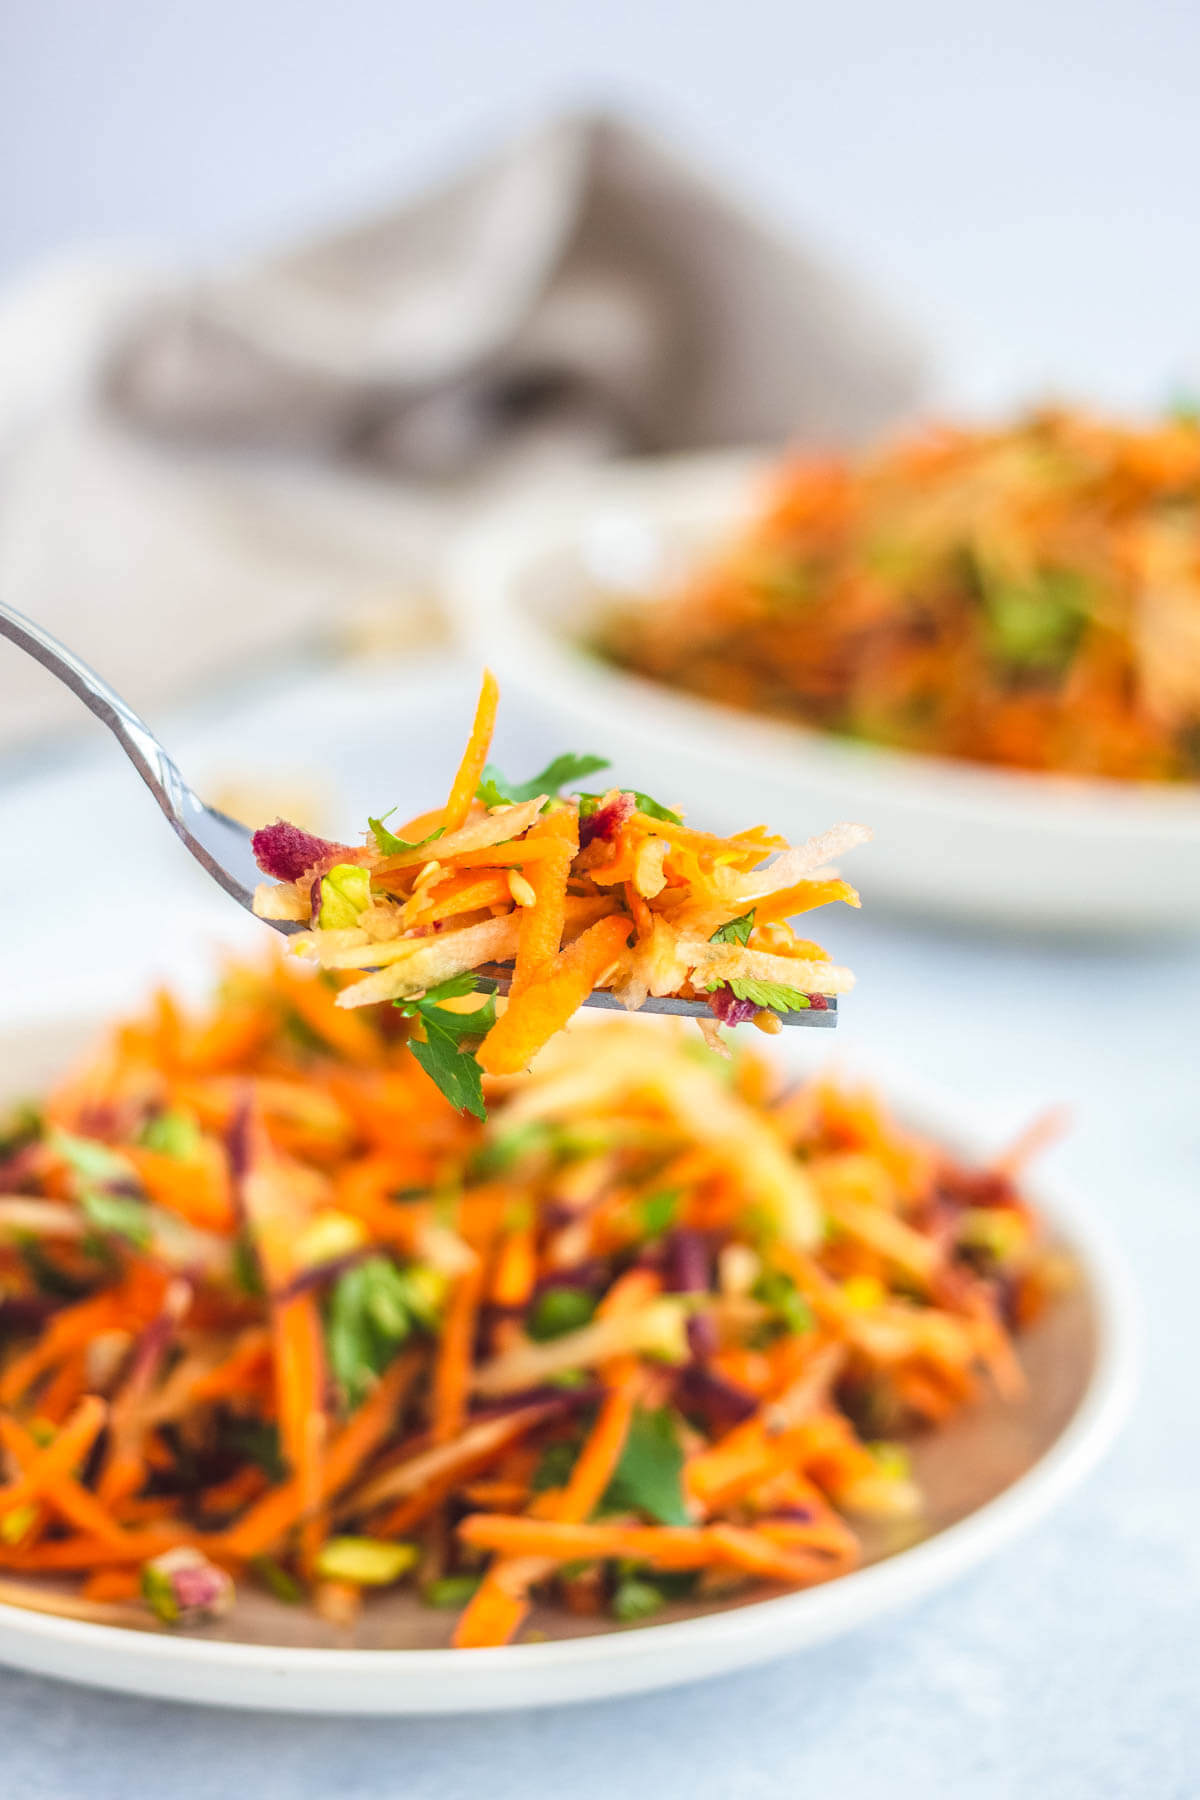 A fork holding colourful carrot salad over a bowl of salad.